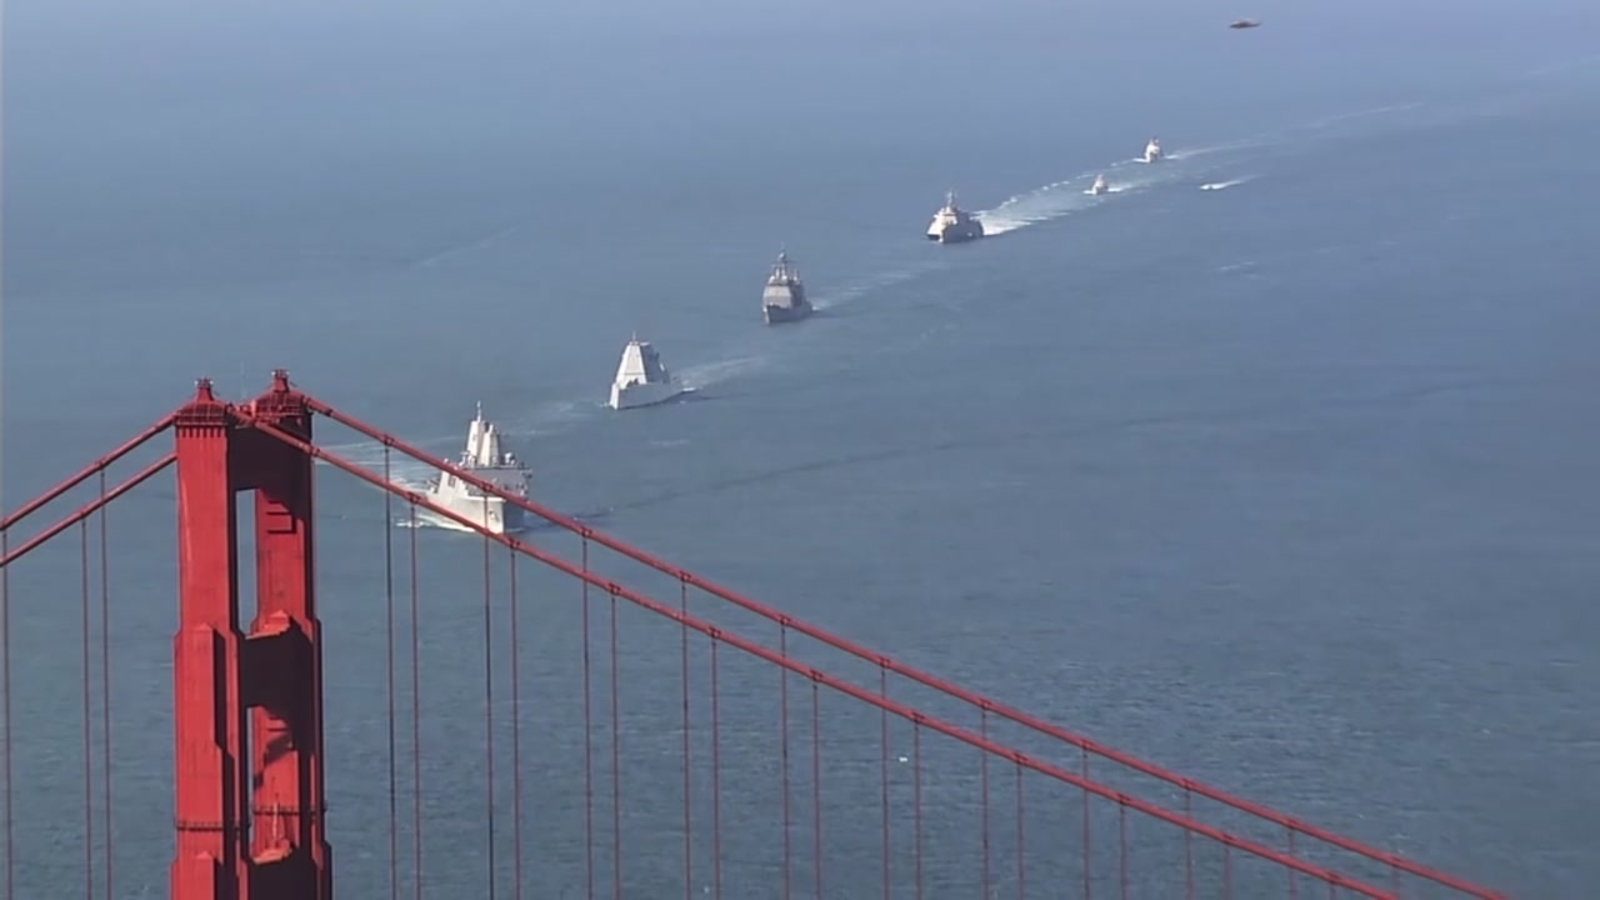 VIDEO: Ships arrive in San Francisco Bay for Fleet Week's Parade of Ships